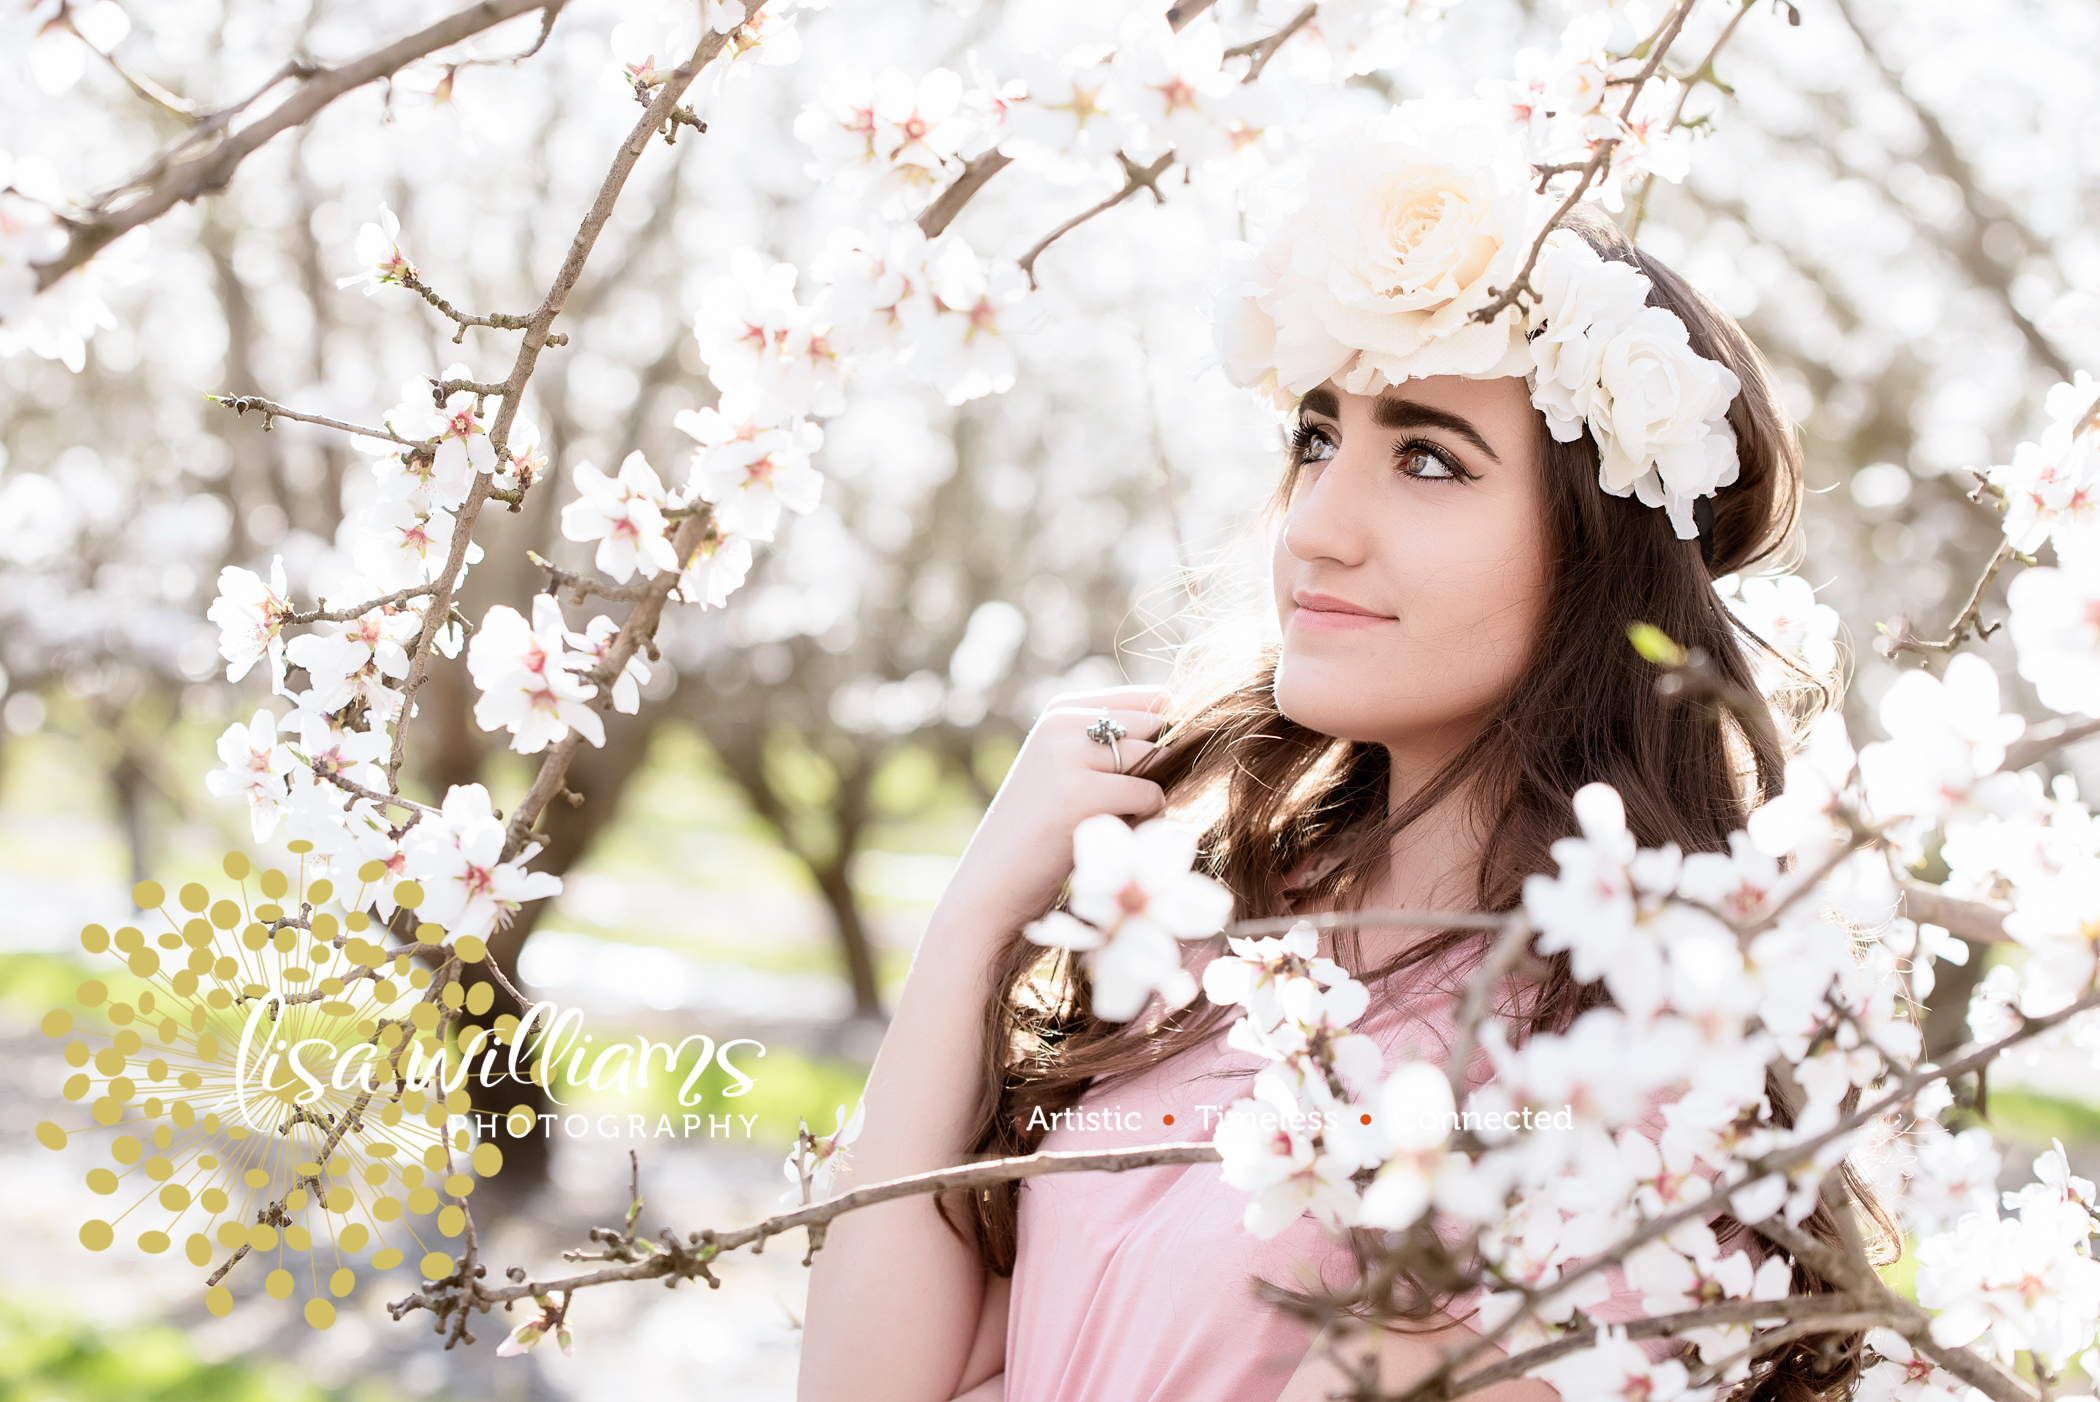 Lisa Williams photography – grass valley portrait photographer- senior portrait photographer- northern California senior portraits- Nevada county senior portraits – Colfax Senior Portraits – Rocklin Senior Portraits- Roseville Senior Portraits – t-11.jpg